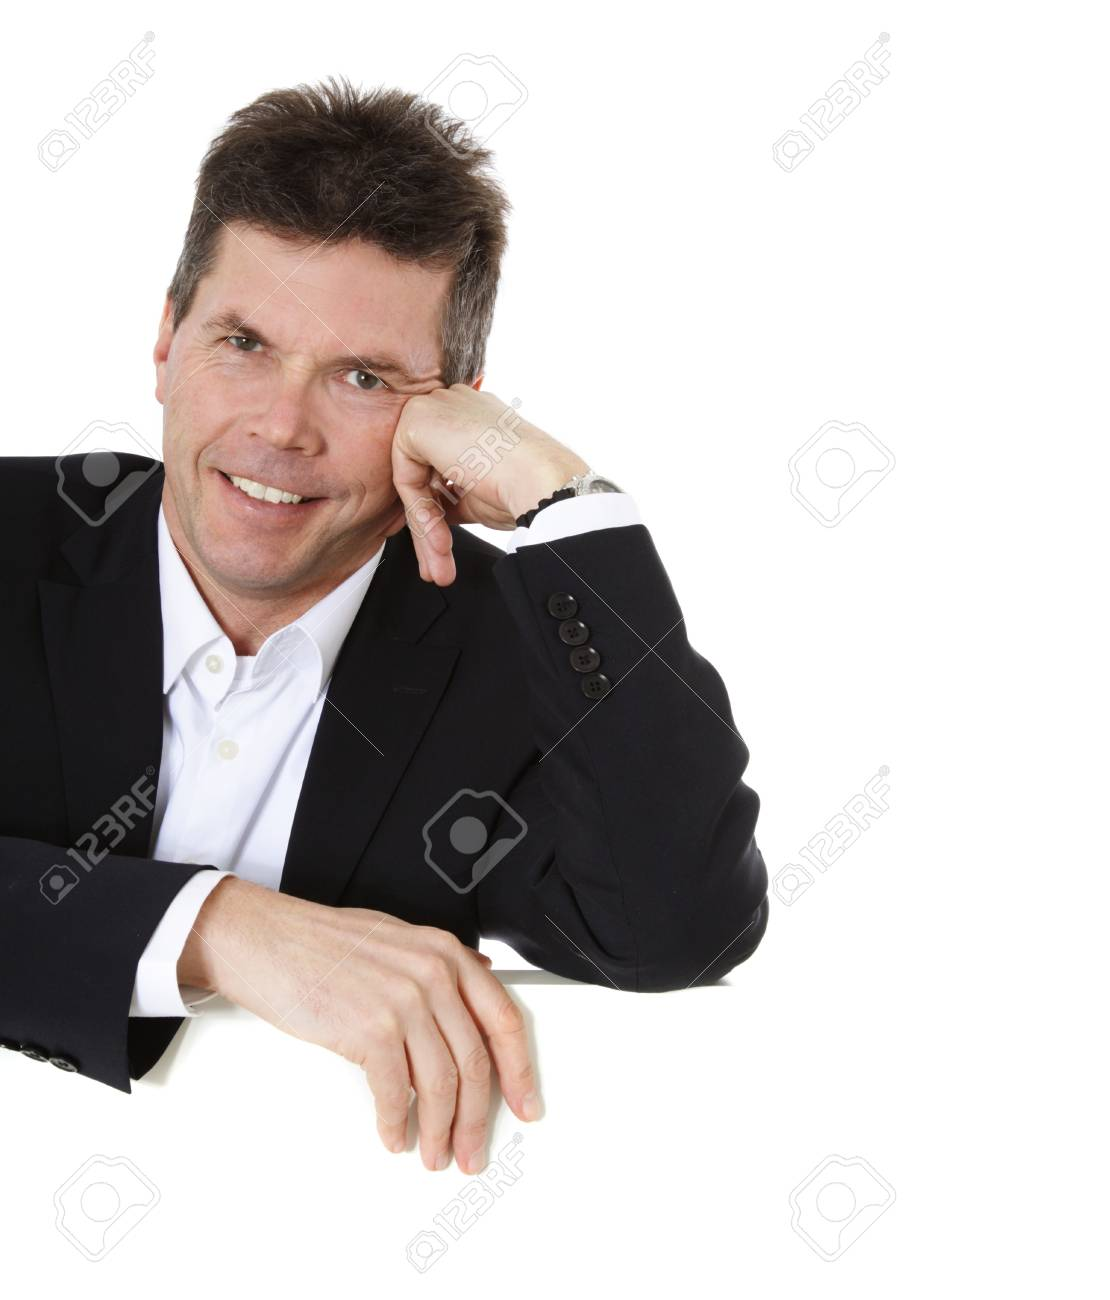 Attractive middle-aged man. All on white background. Stock Photo - 8824745